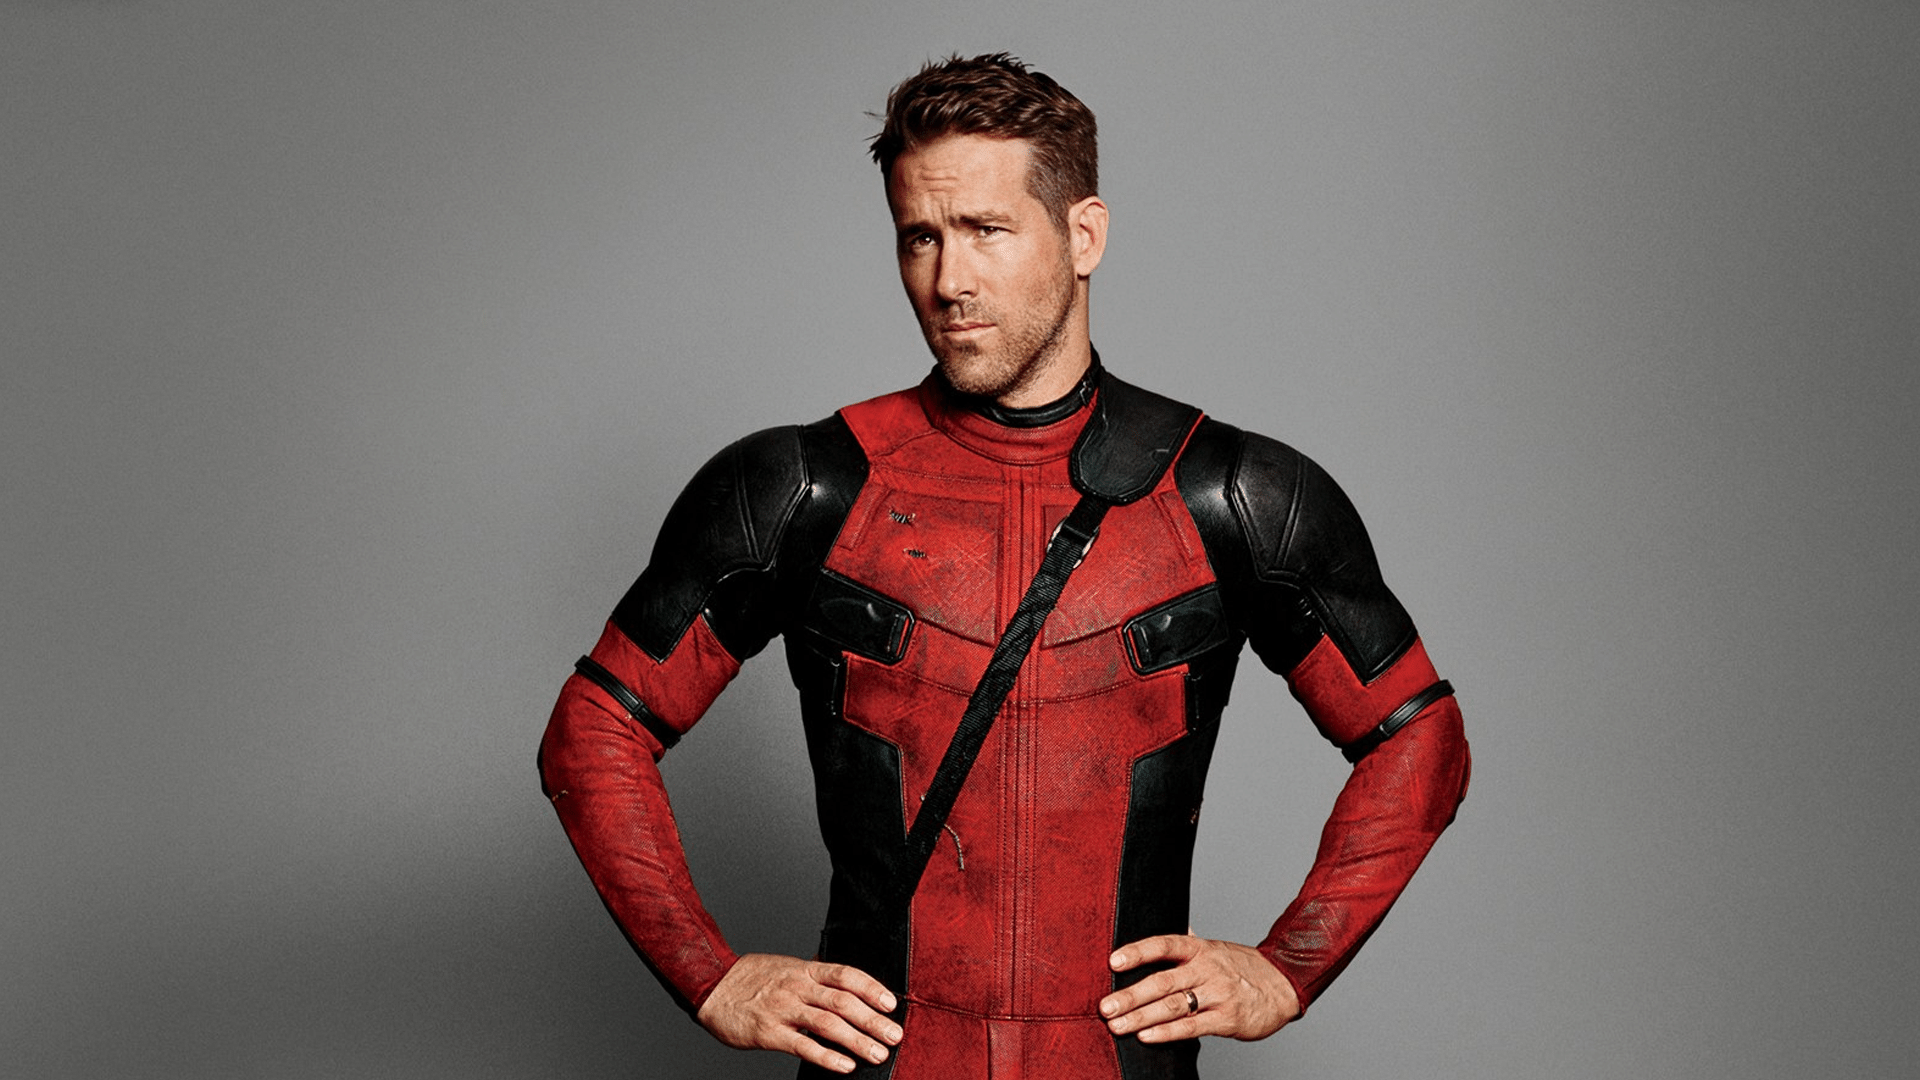 De Green Lantern à Deadpool : Ryan Reynolds, nouvelle figure du cool